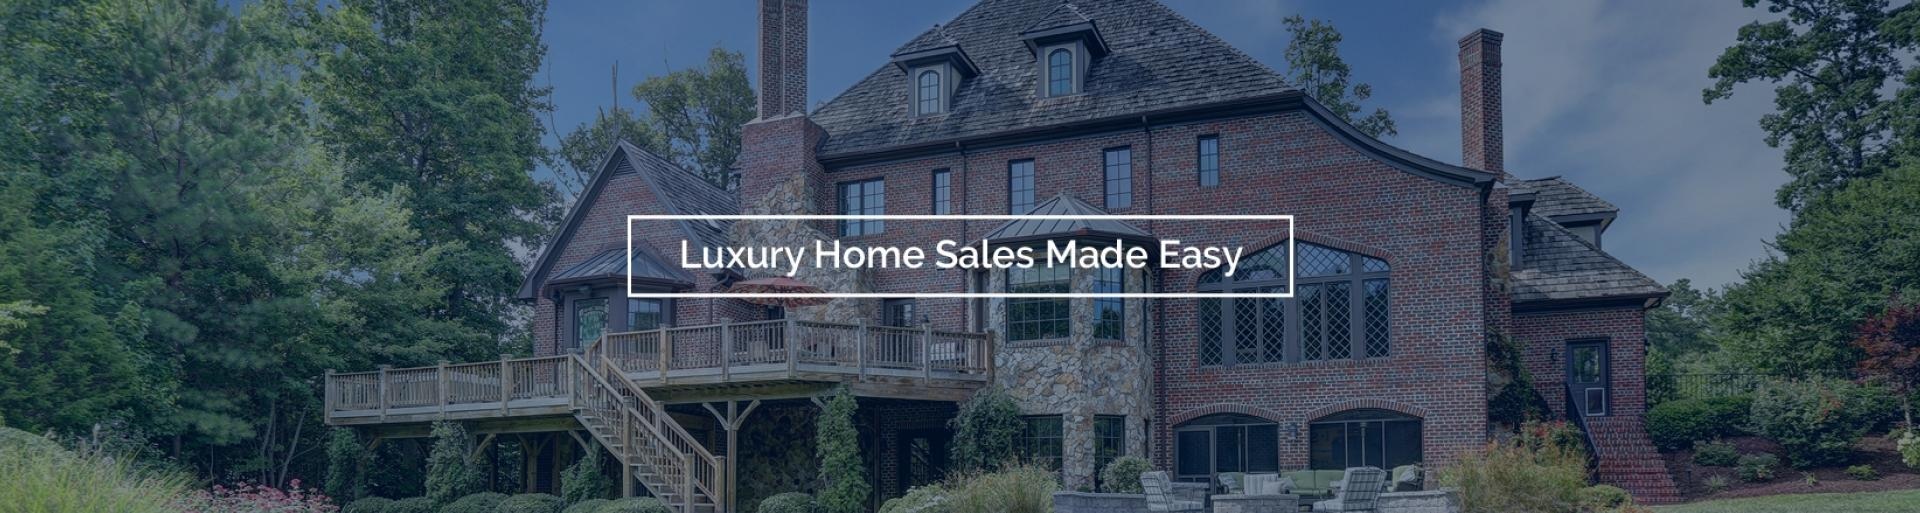 Luxury Home Sales Made Easy